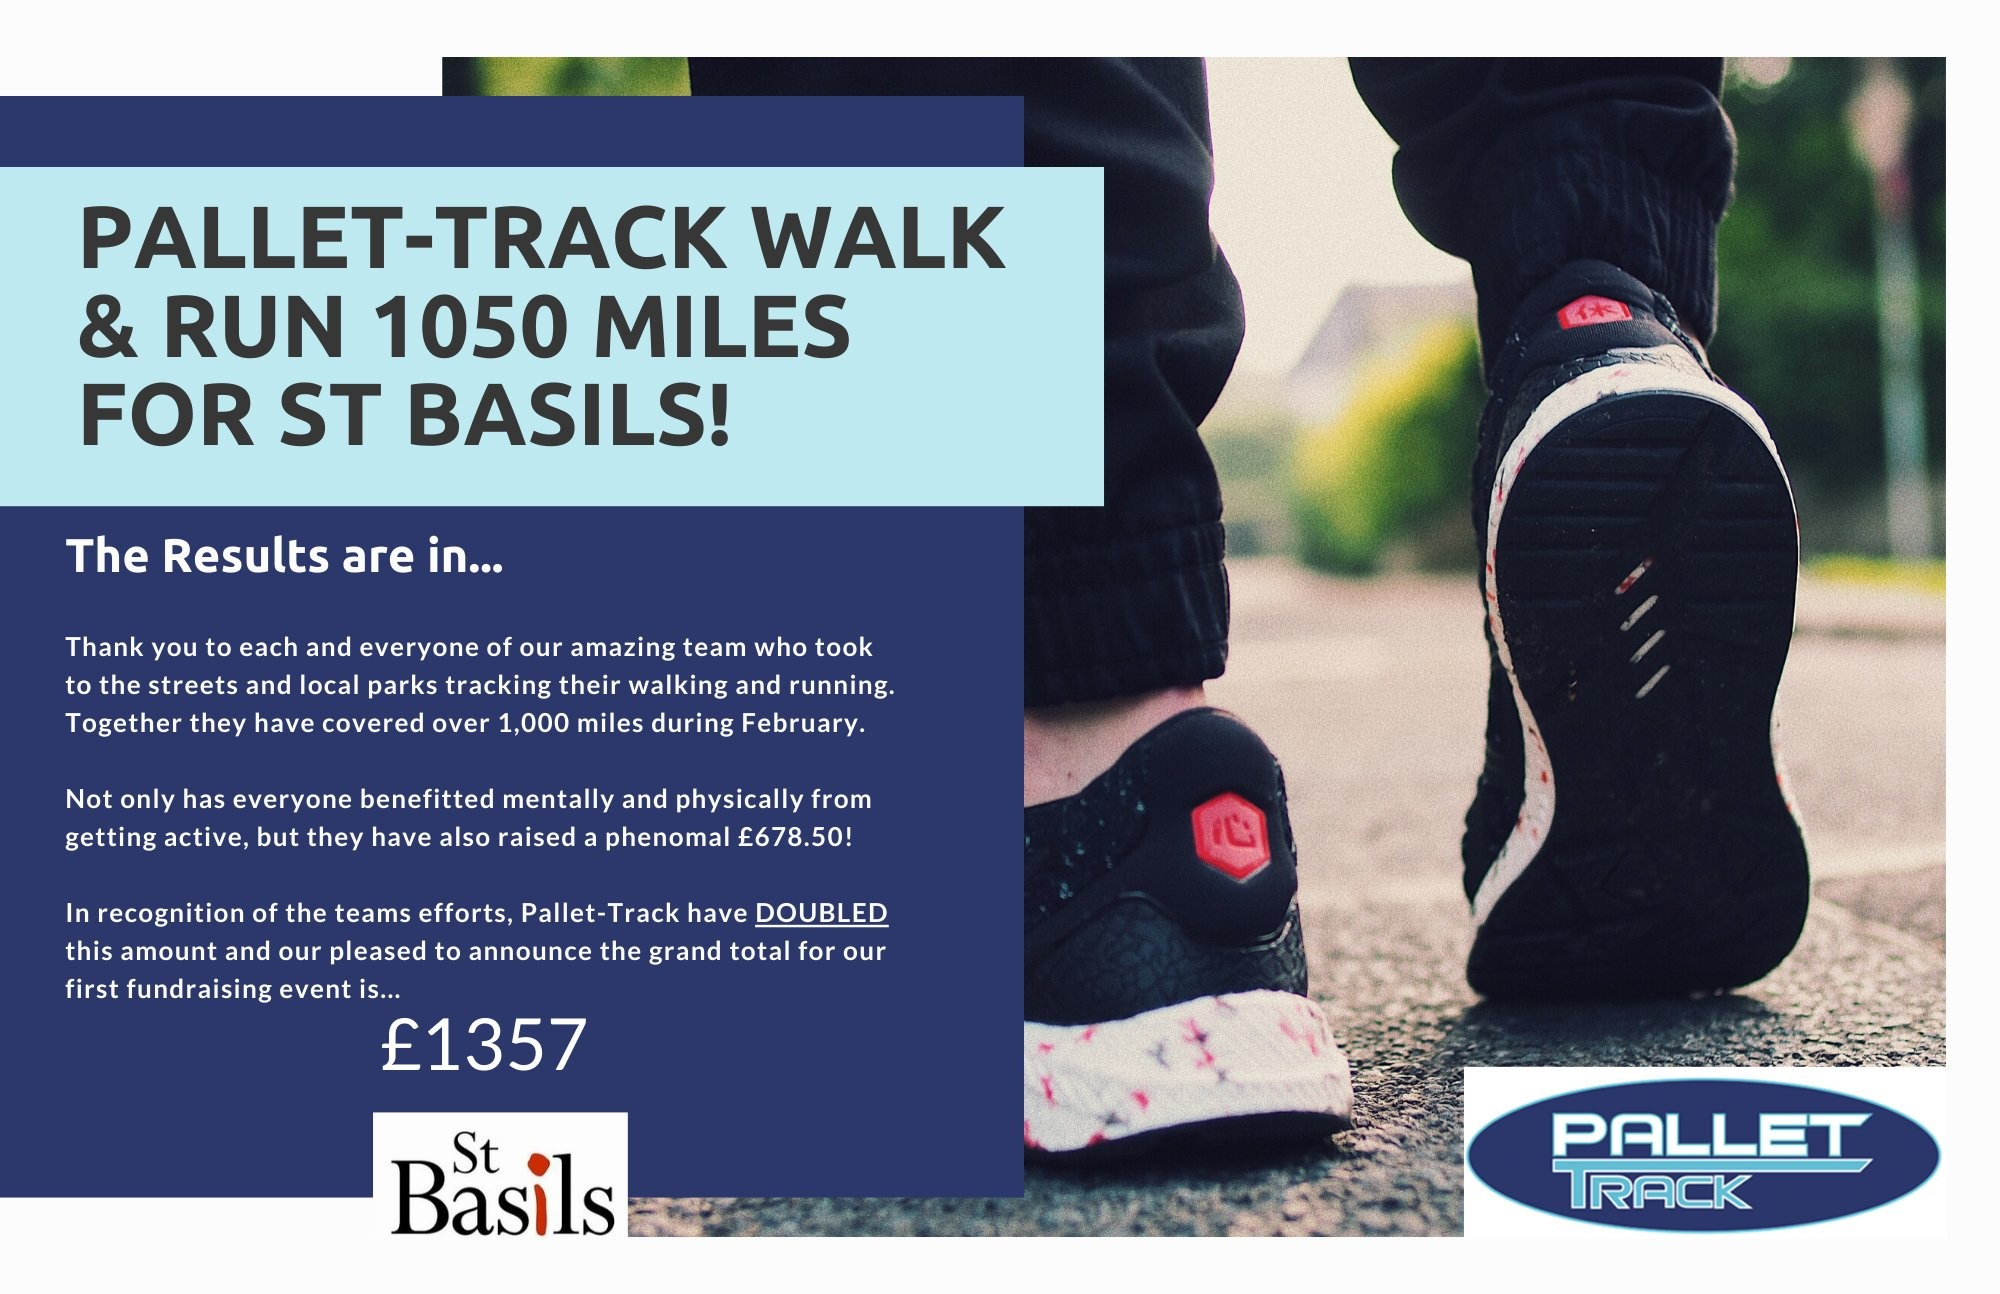 New fundraising partners Pallet Track have already raised over £1000